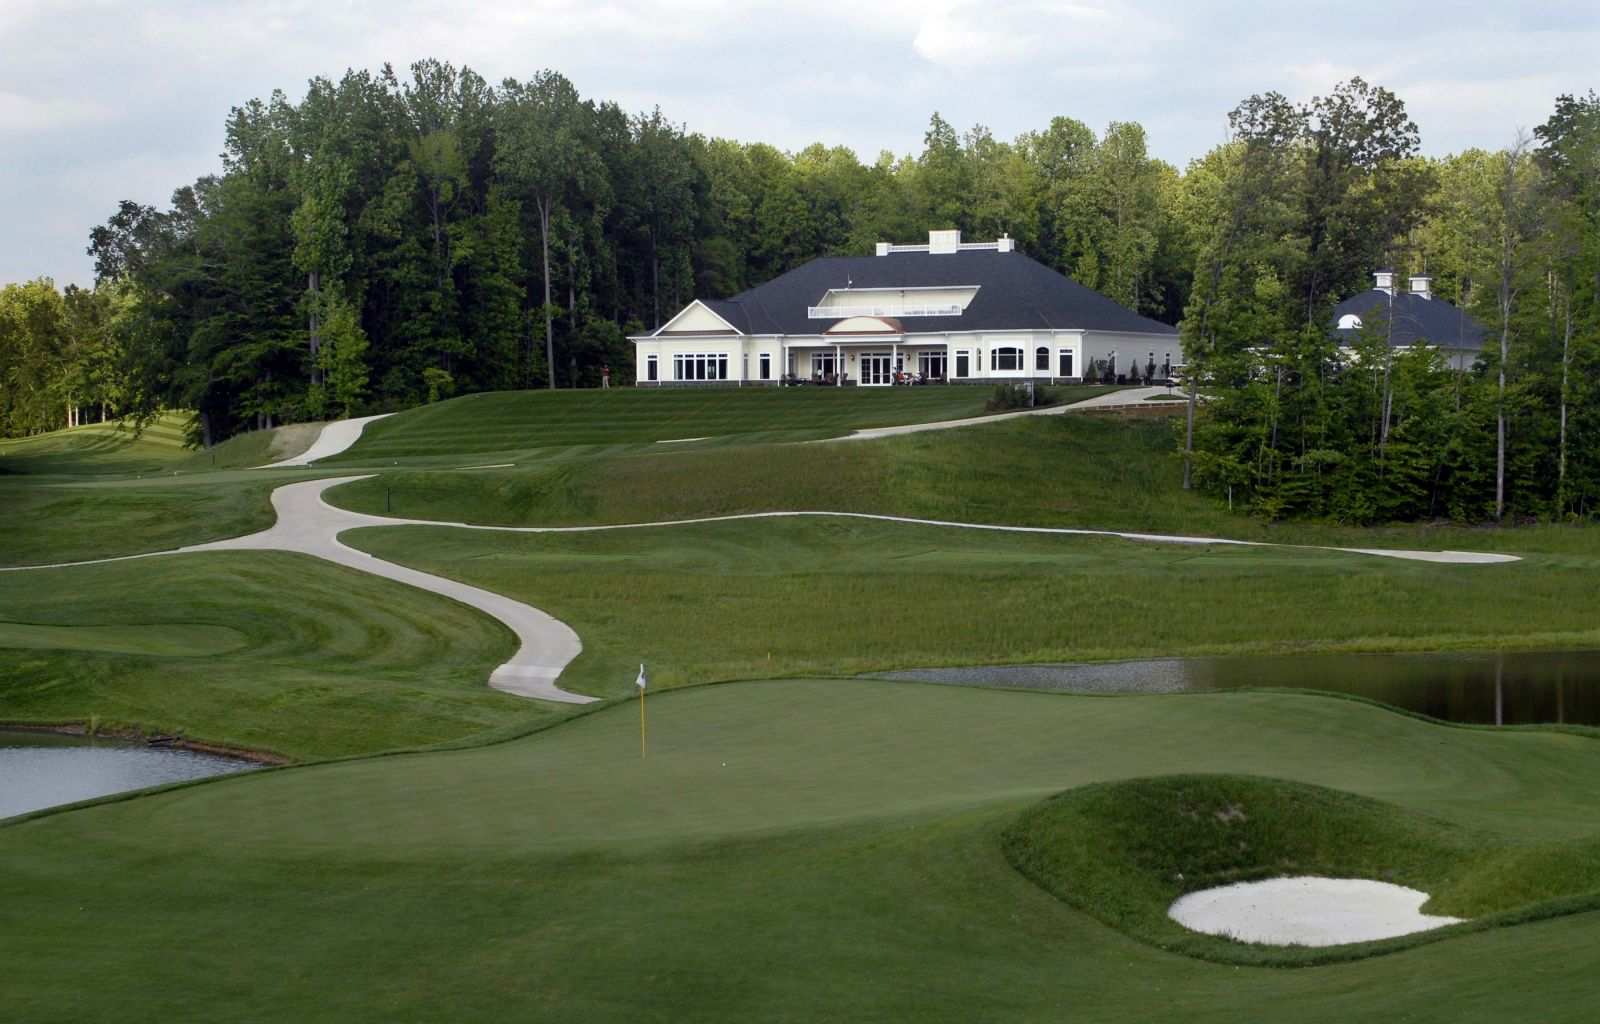 View of the clubhouse over the greens